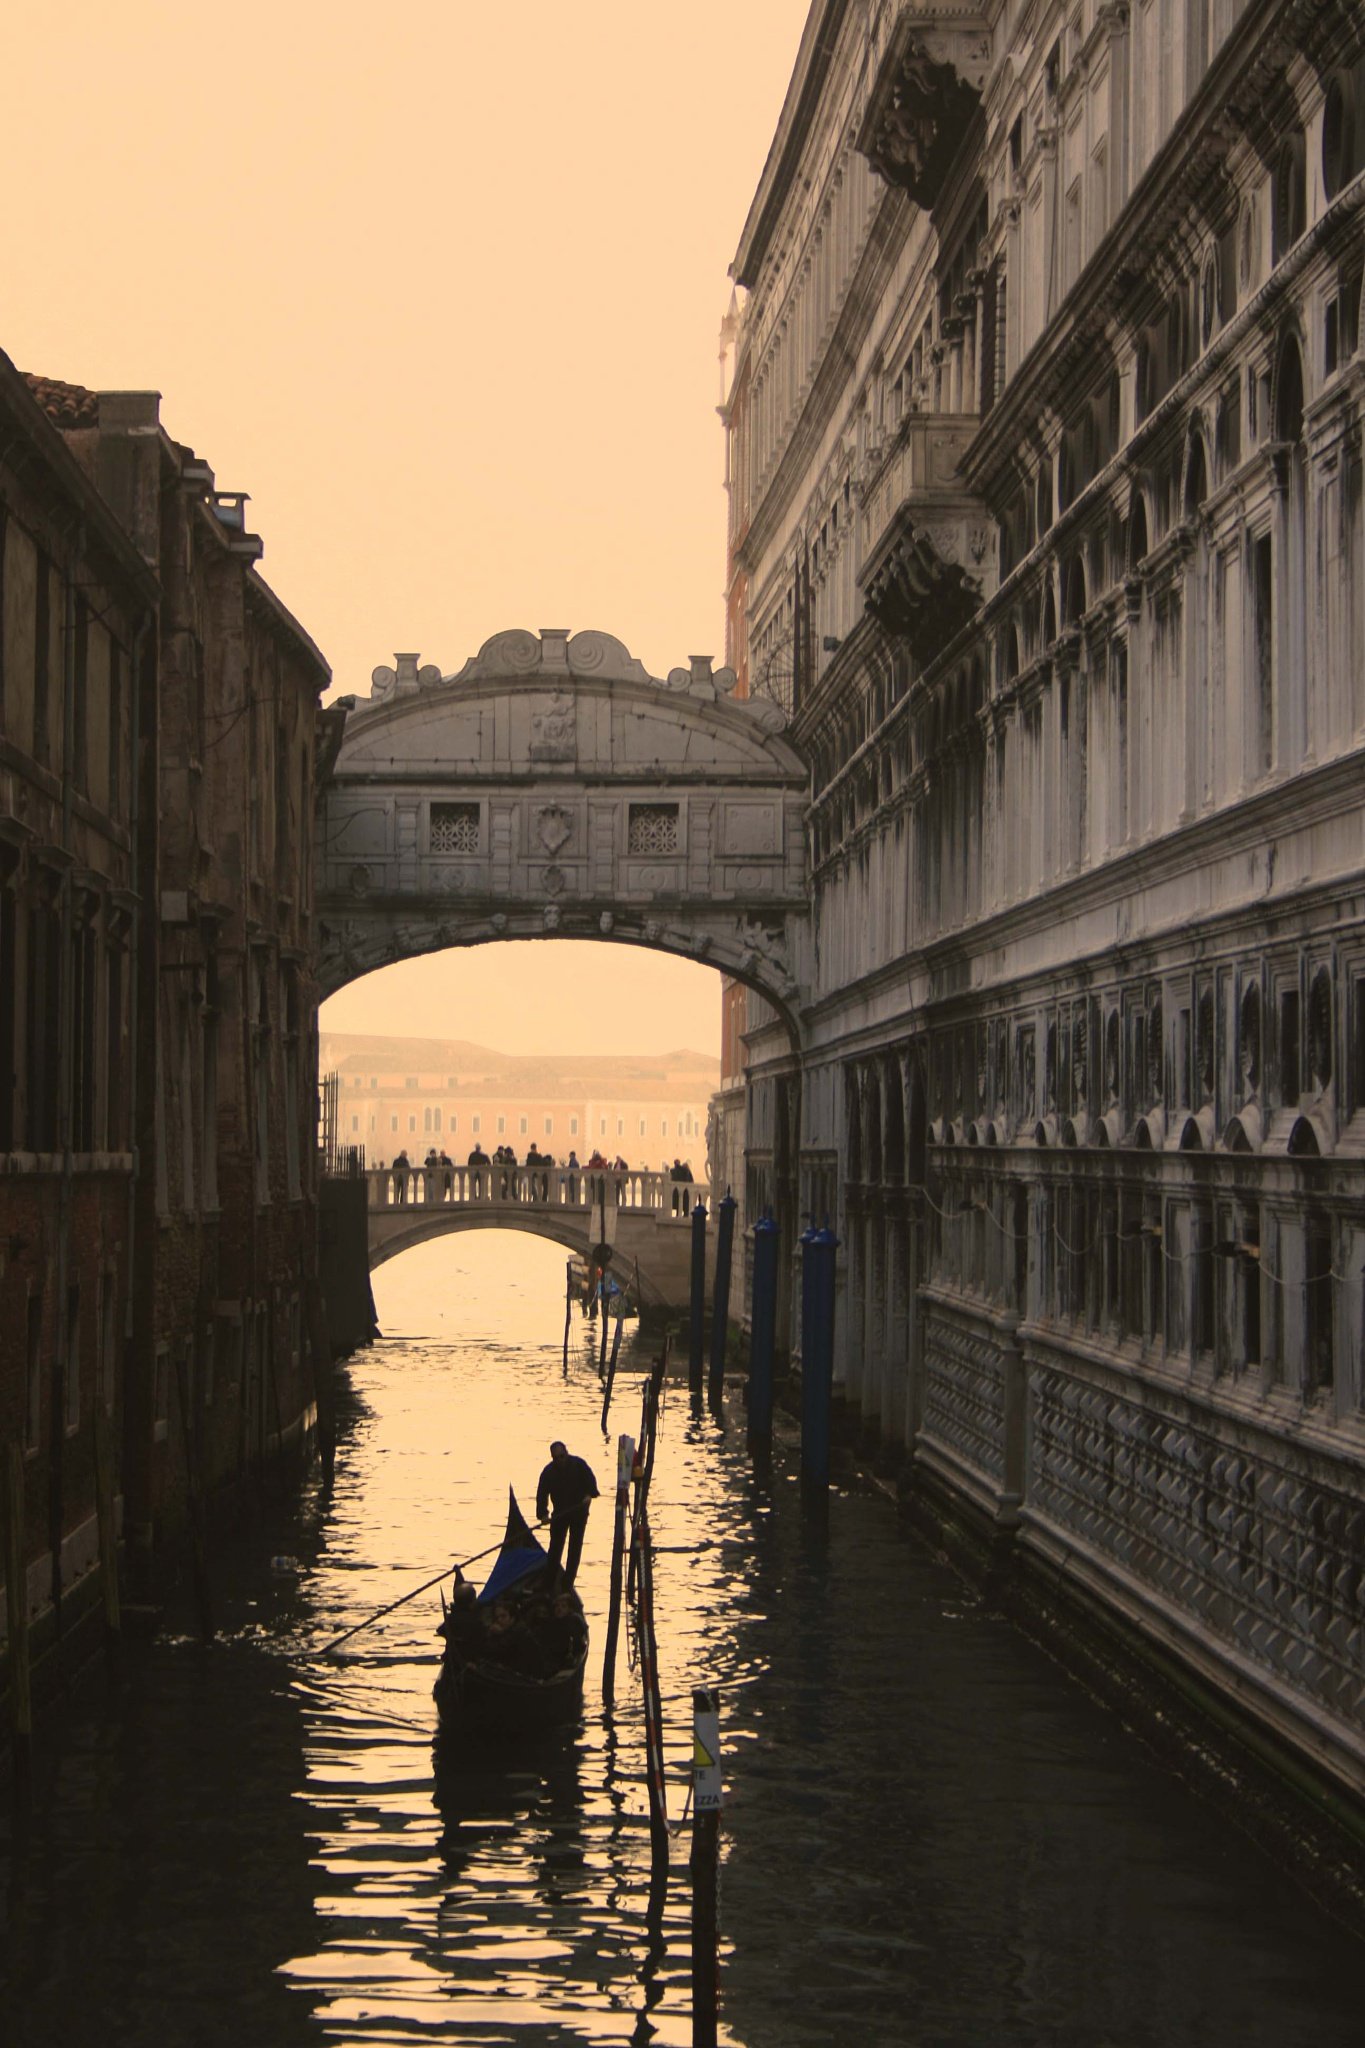 Bridge of sighs.  Venice. by billymcwilliams